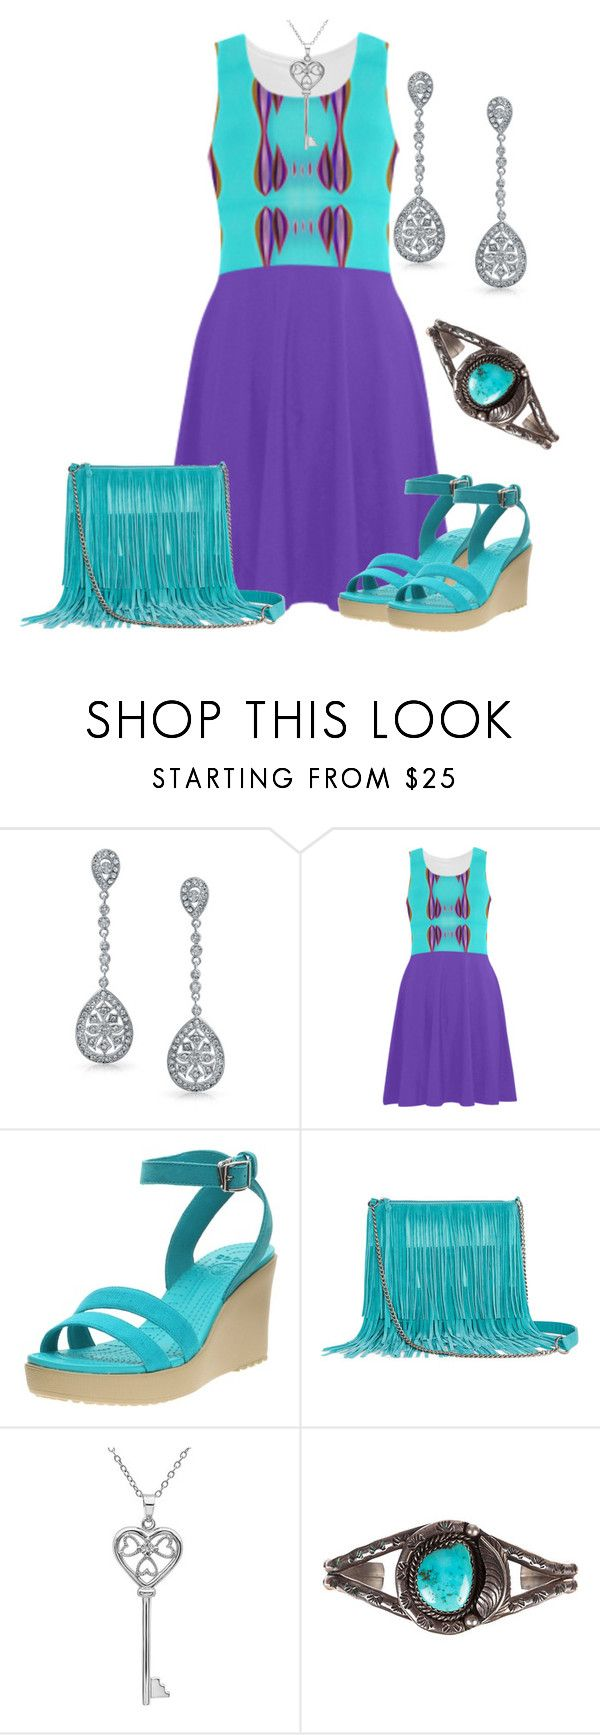 """Untitled #3278"" by ifuseekjamie94 ❤ liked on Polyvore featuring Bling Jewelry, Arizona and Amanda Rose Collection"